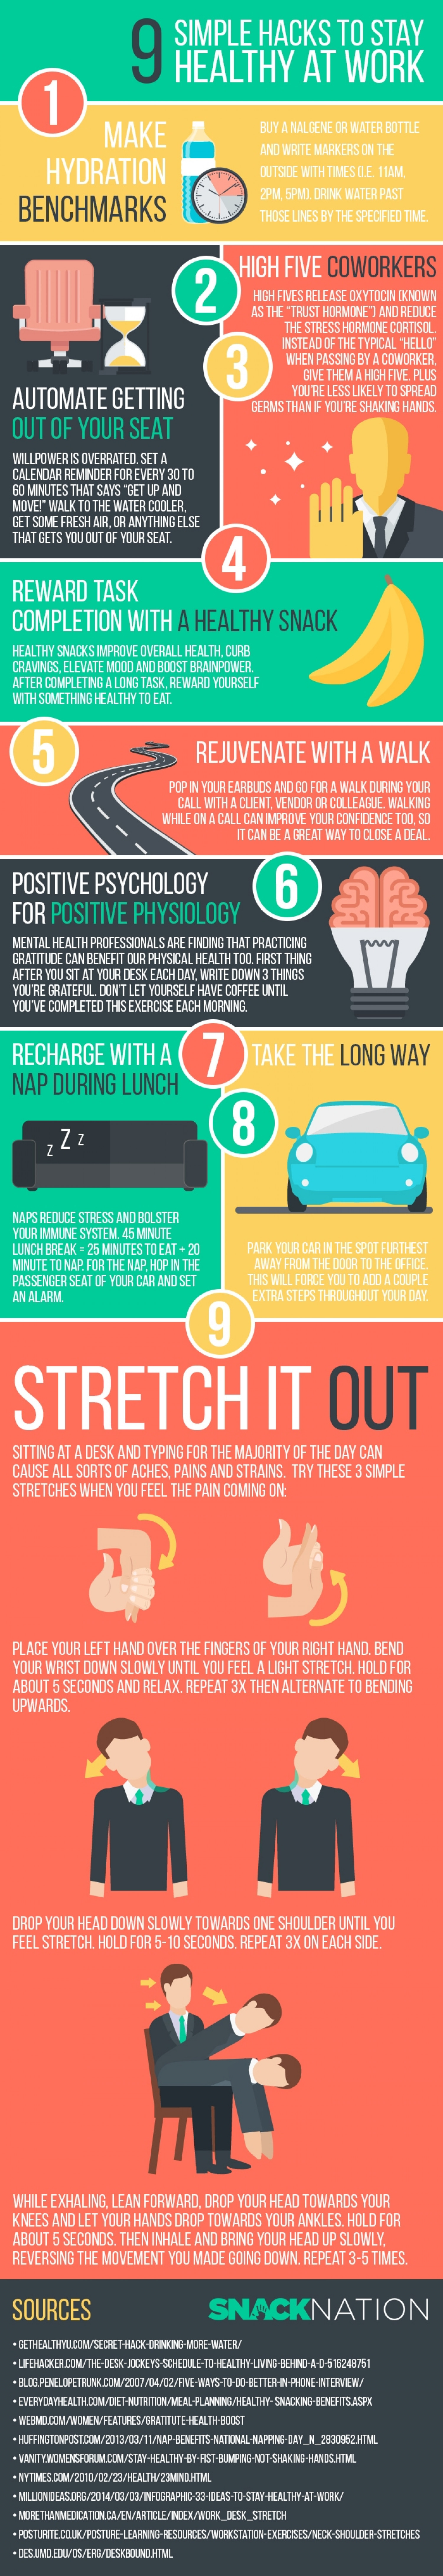 9 Easy Hacks to Stay Healthy at Work Infographic